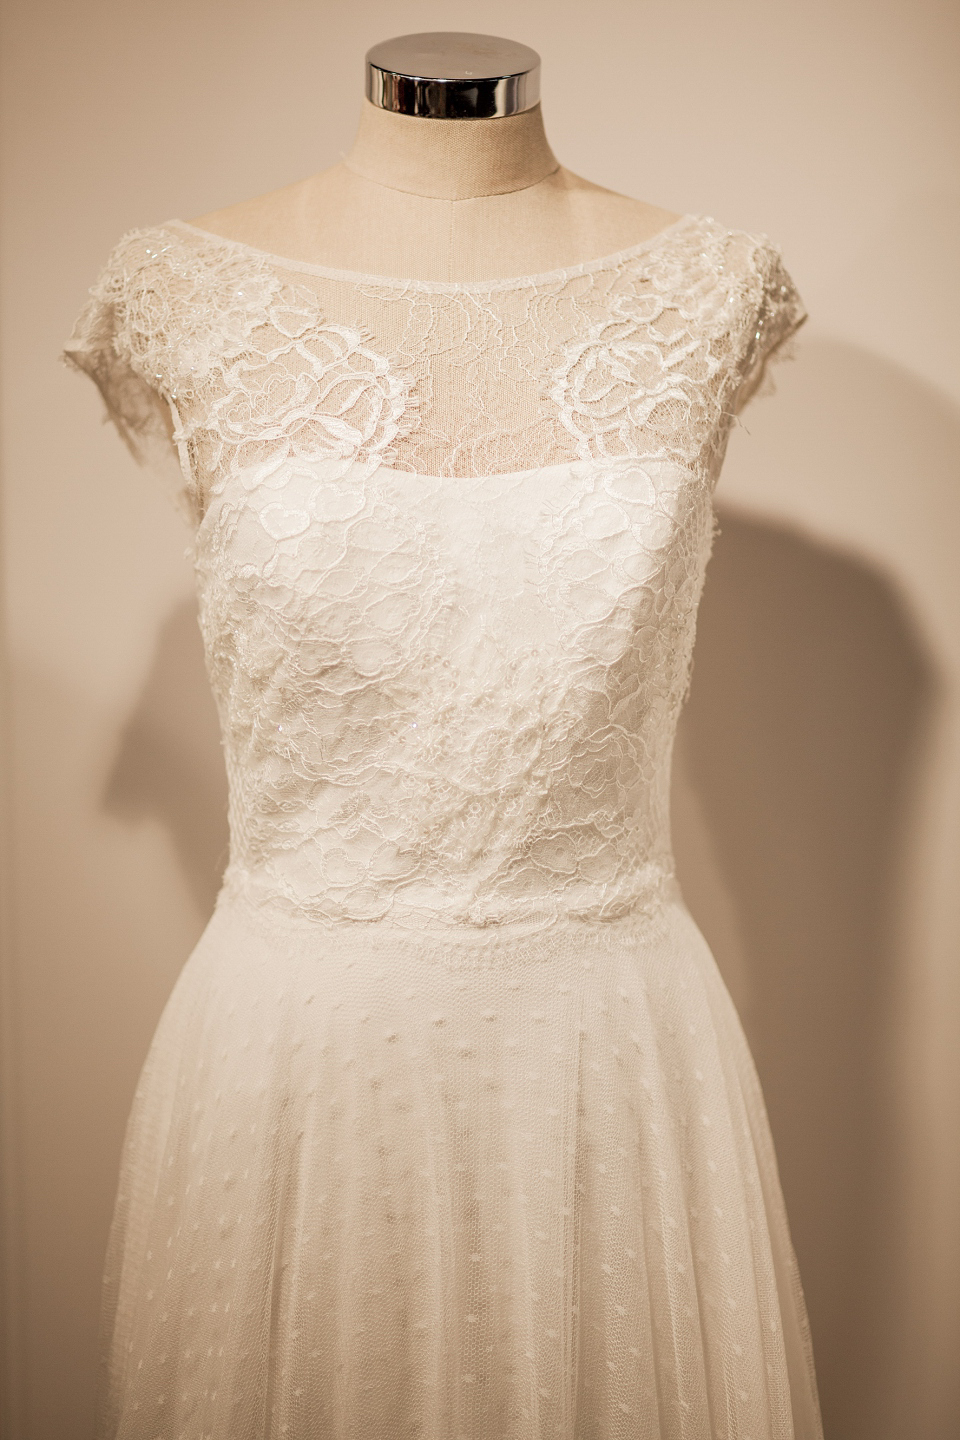 The White Gallery 2014 (Bridal Fashion Fashion & Beauty Get Inspired Supplier Spotlight )